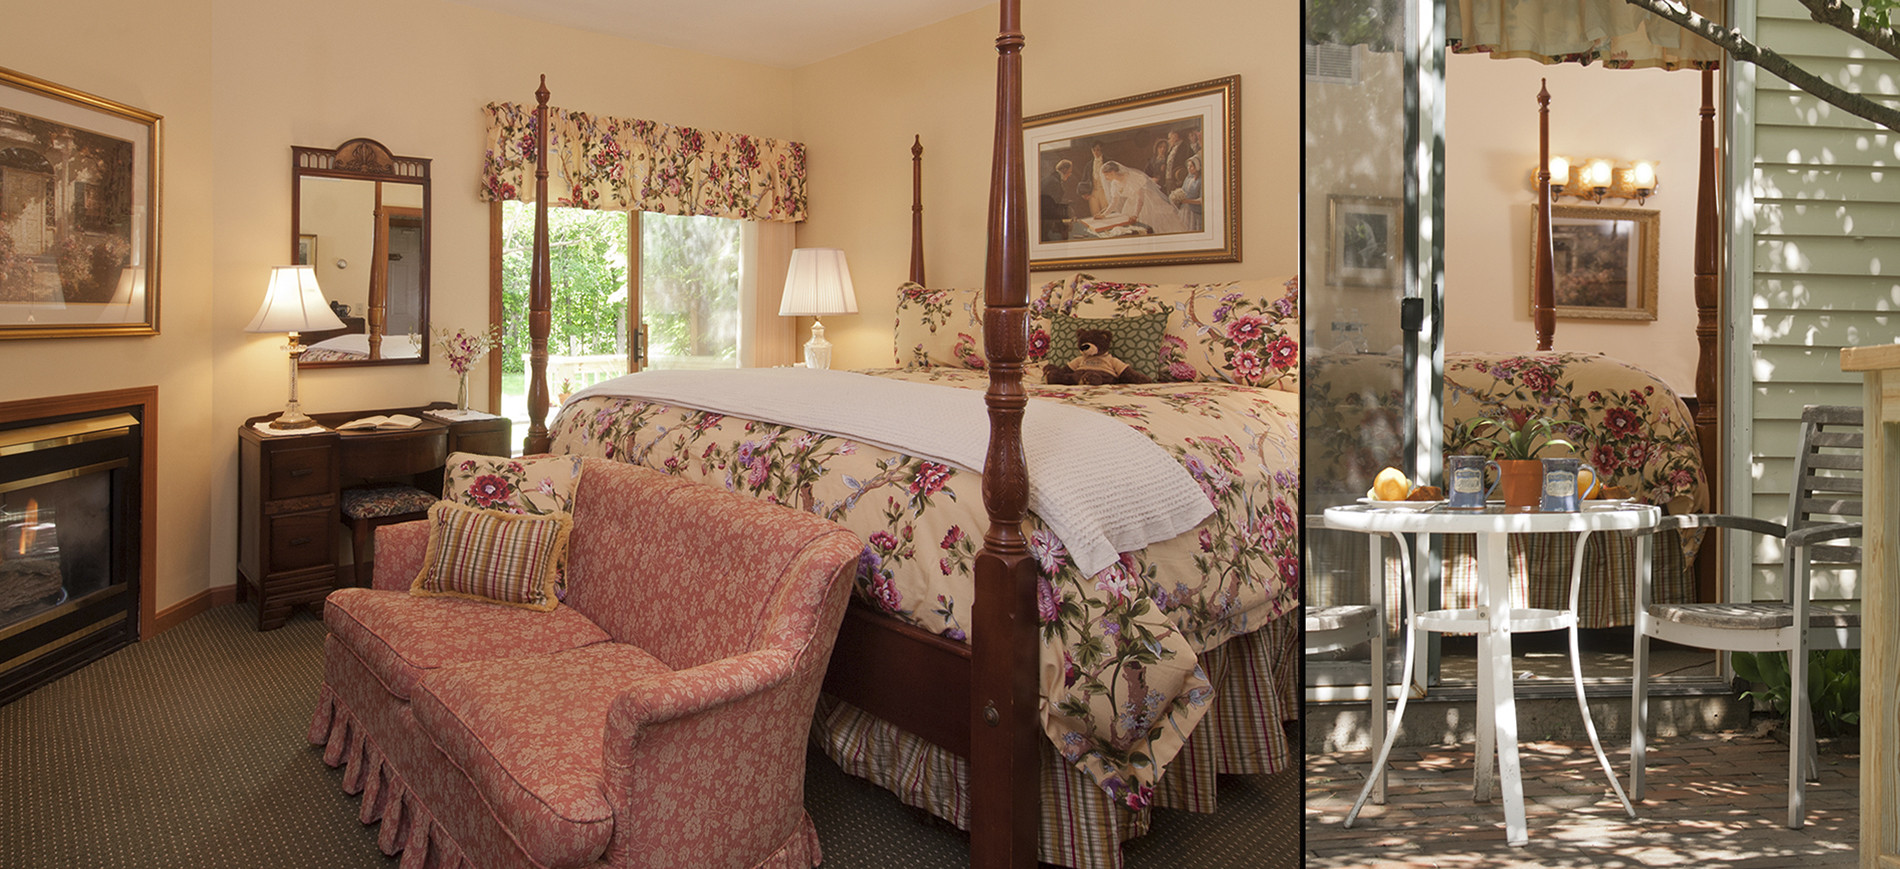 Fireplace with picture above, dressing table with mirror, rose loveseat, king four poster bed with floral bedding, sliding glass door to patio with table & chairs